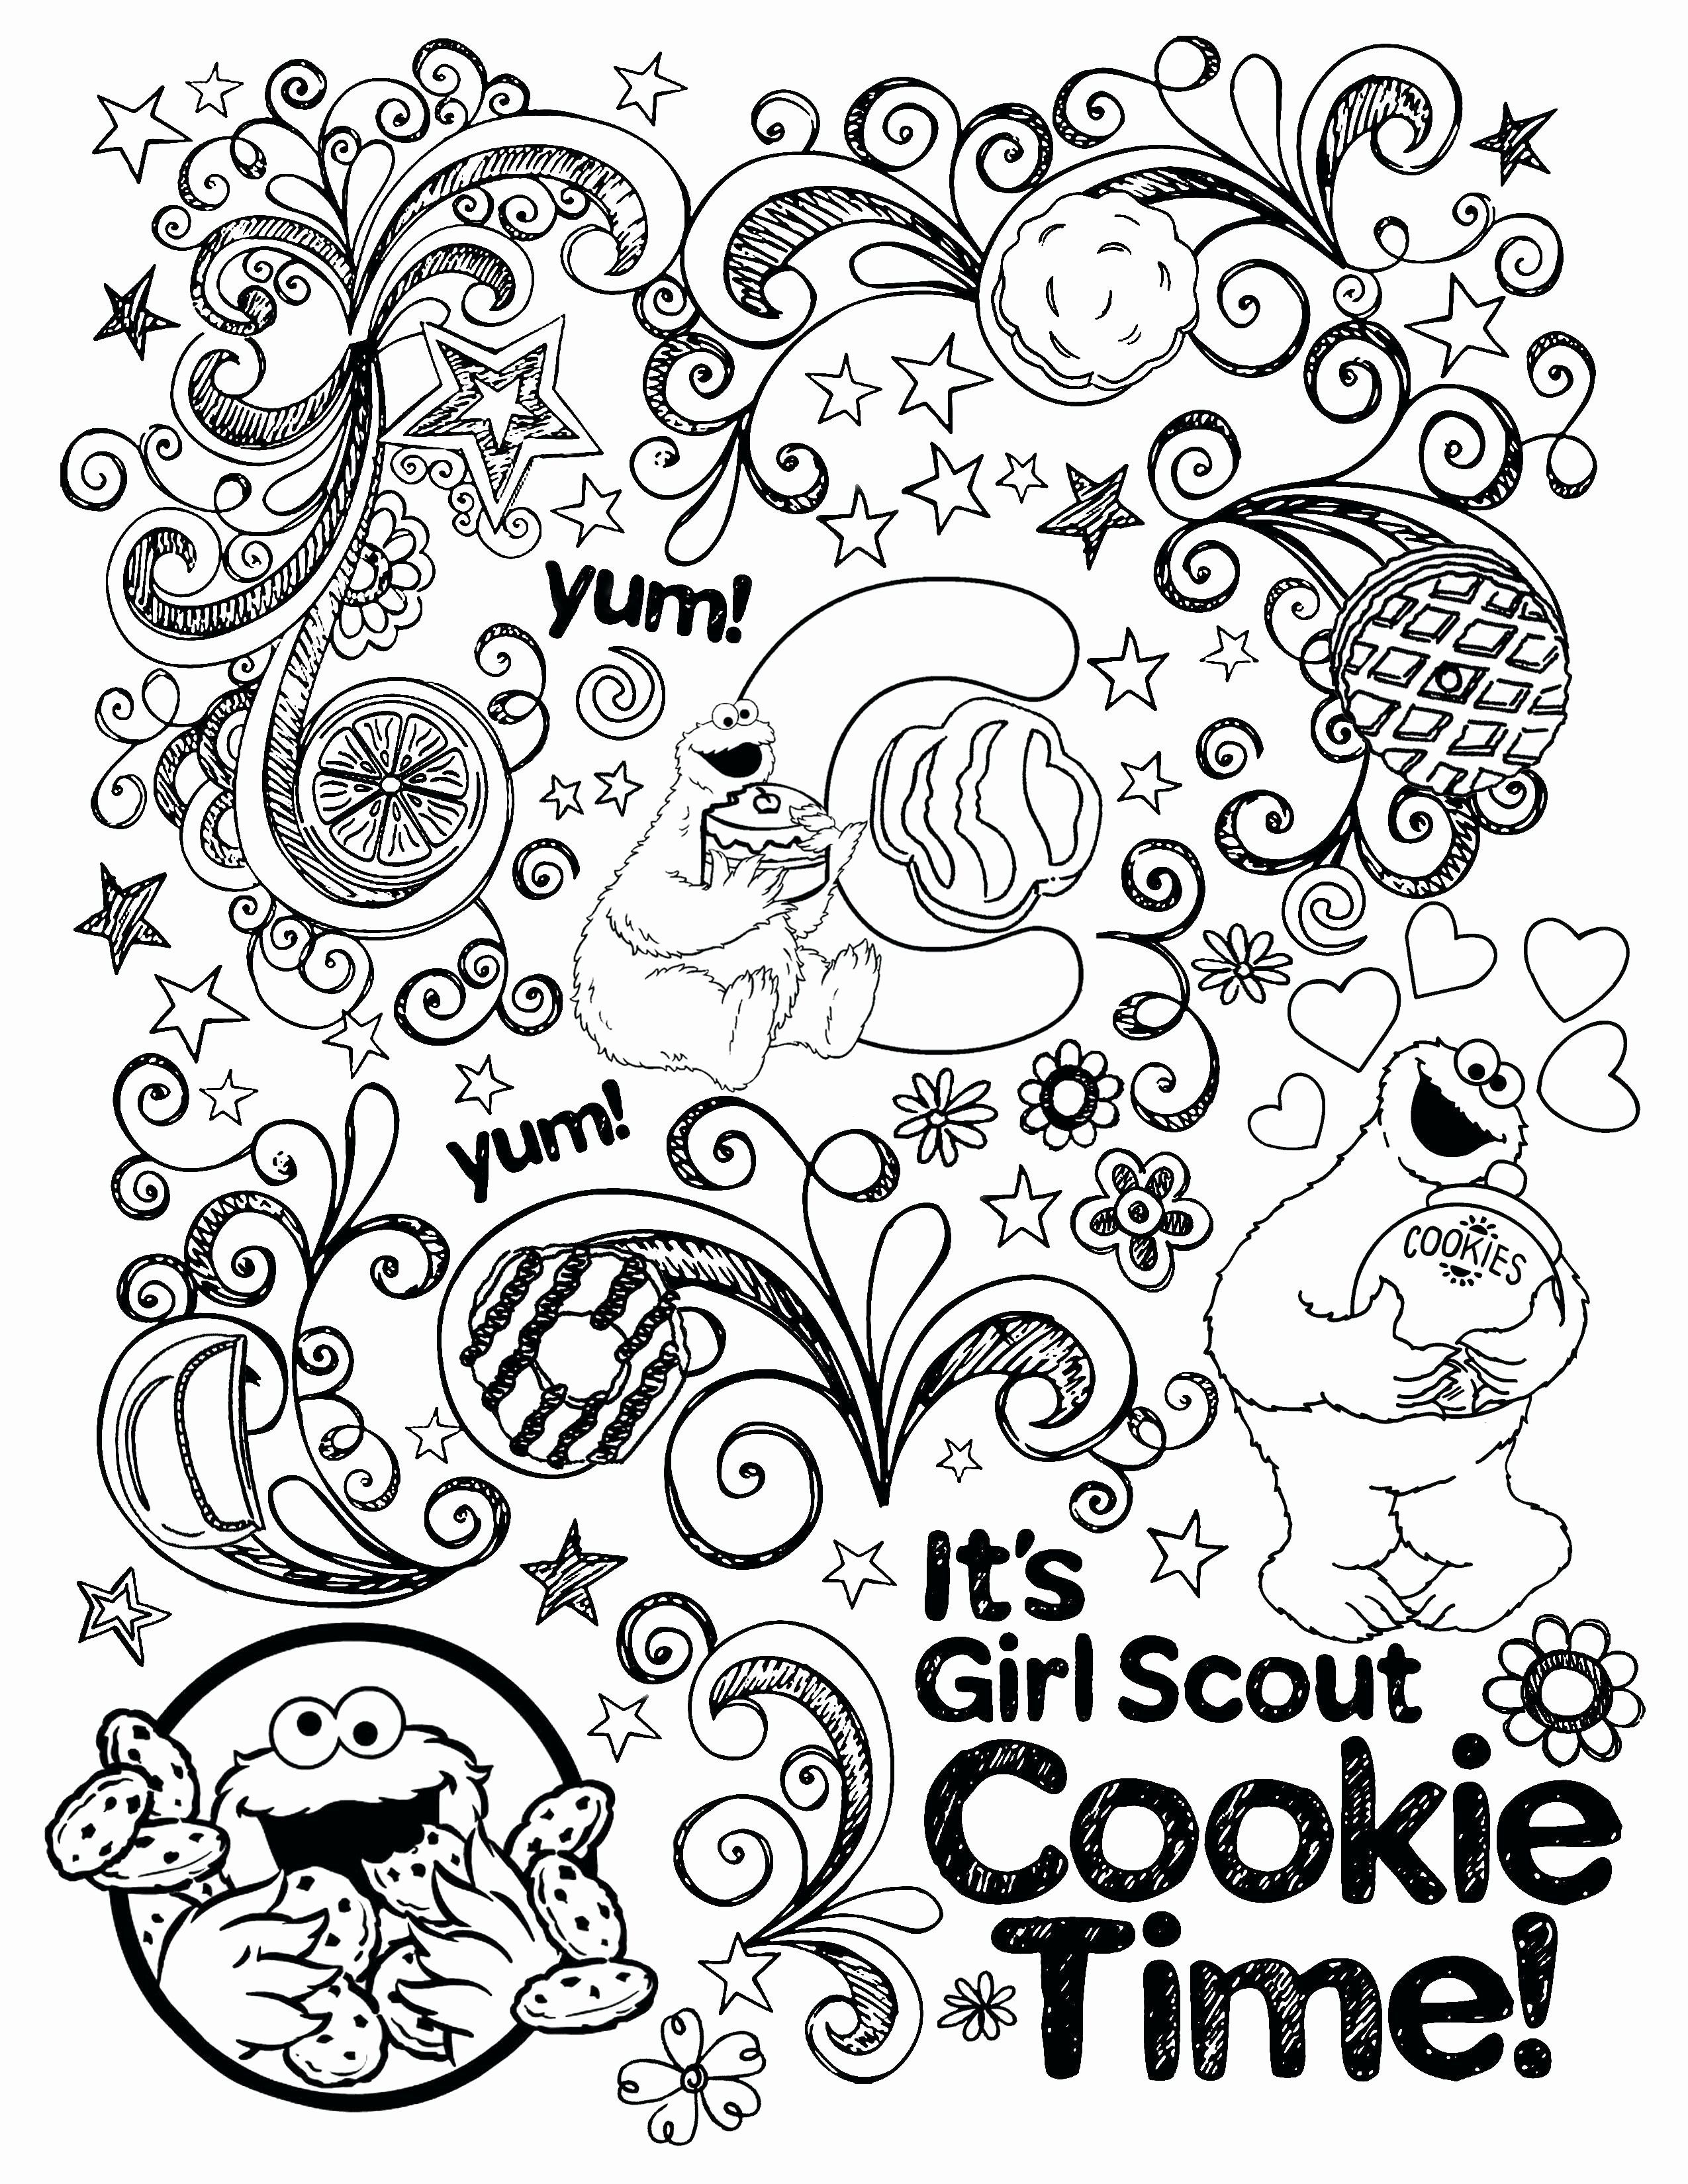 Camping Coloring Pages For Preschool Fresh Girl Scout Camping